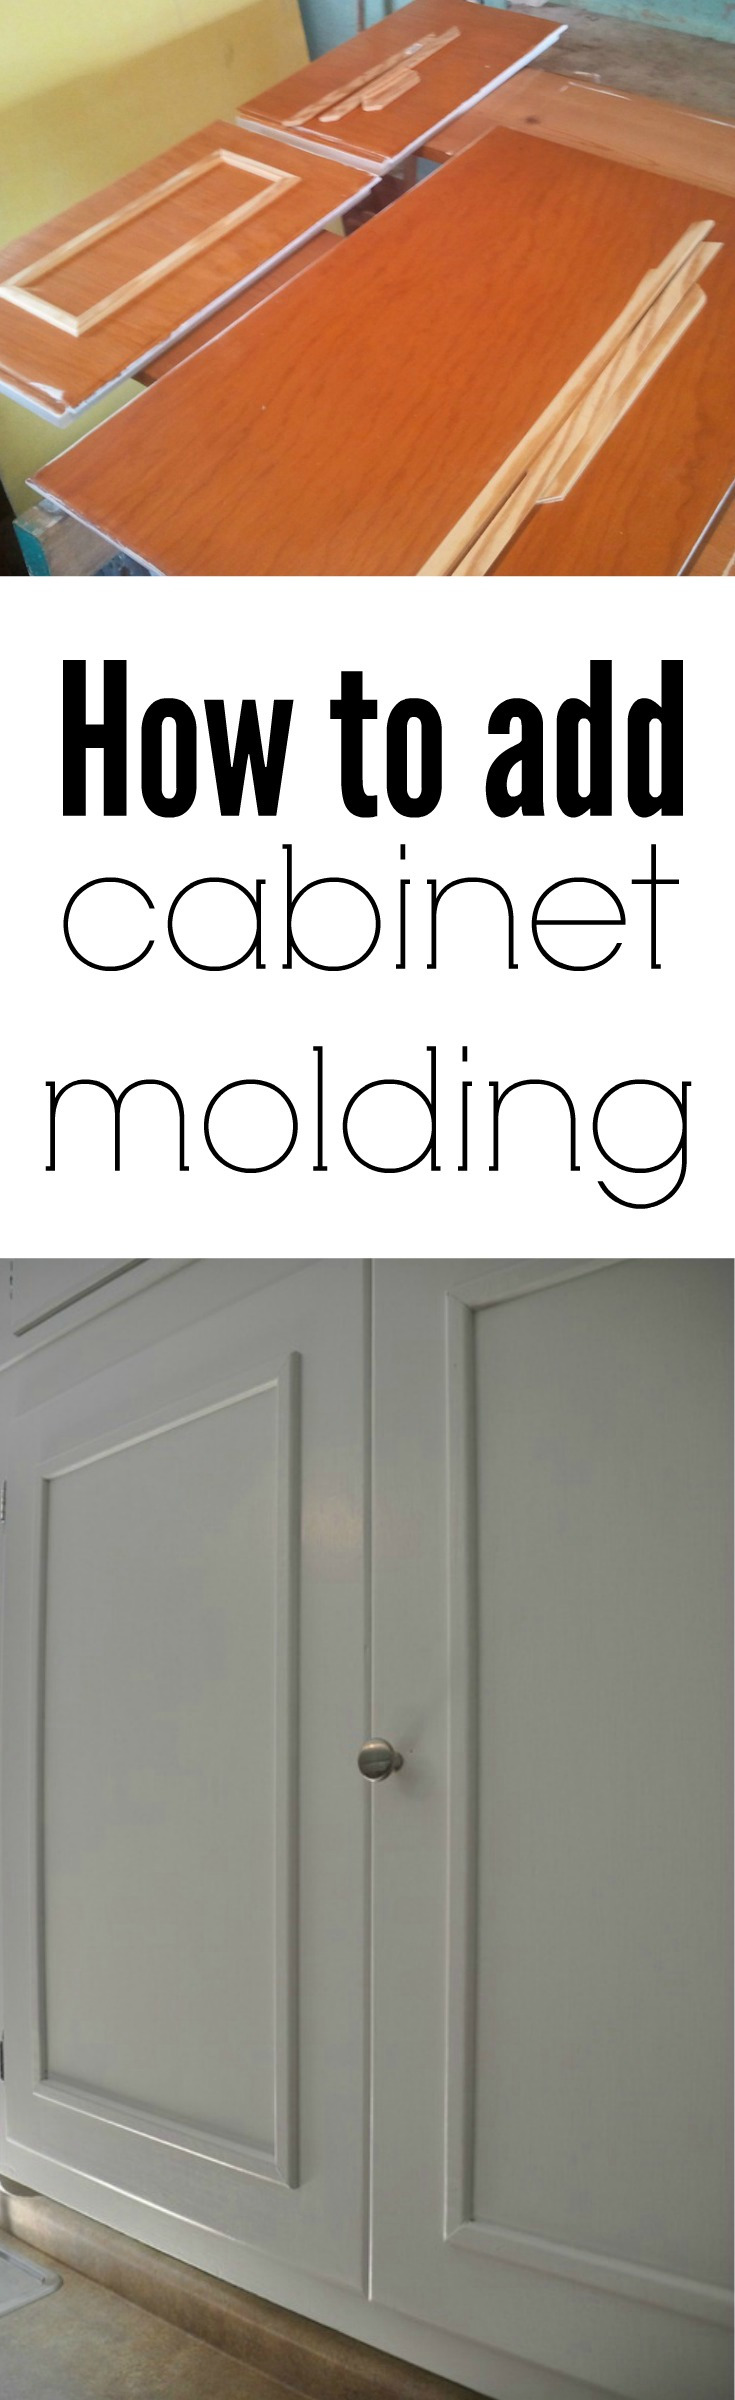 Add Molding to Old Cabinets